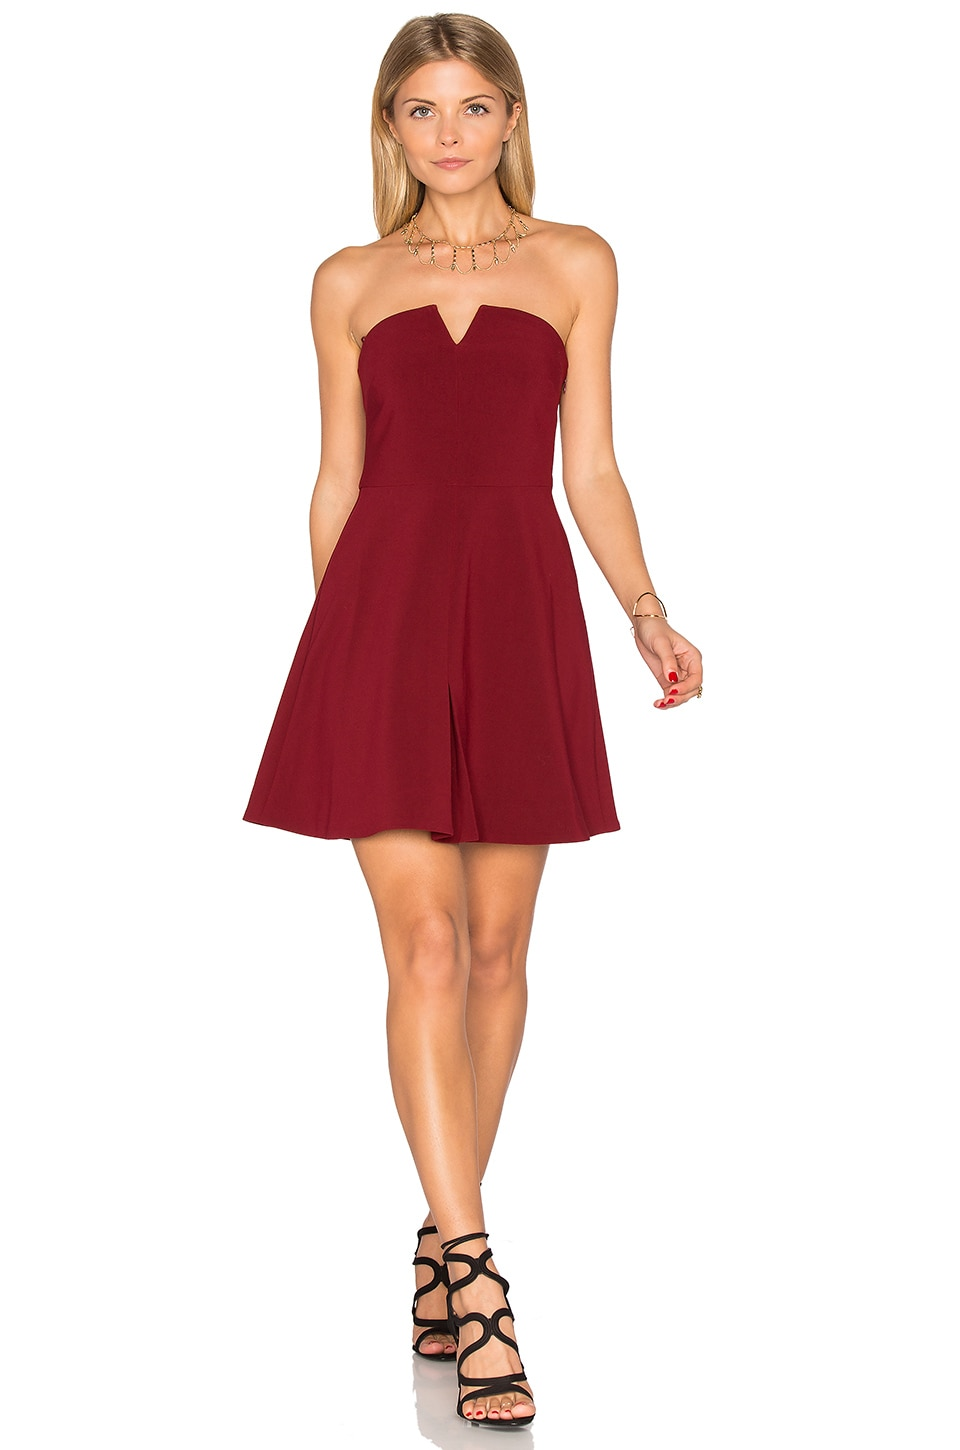 LIKELY Knowlton Dress in Garnet